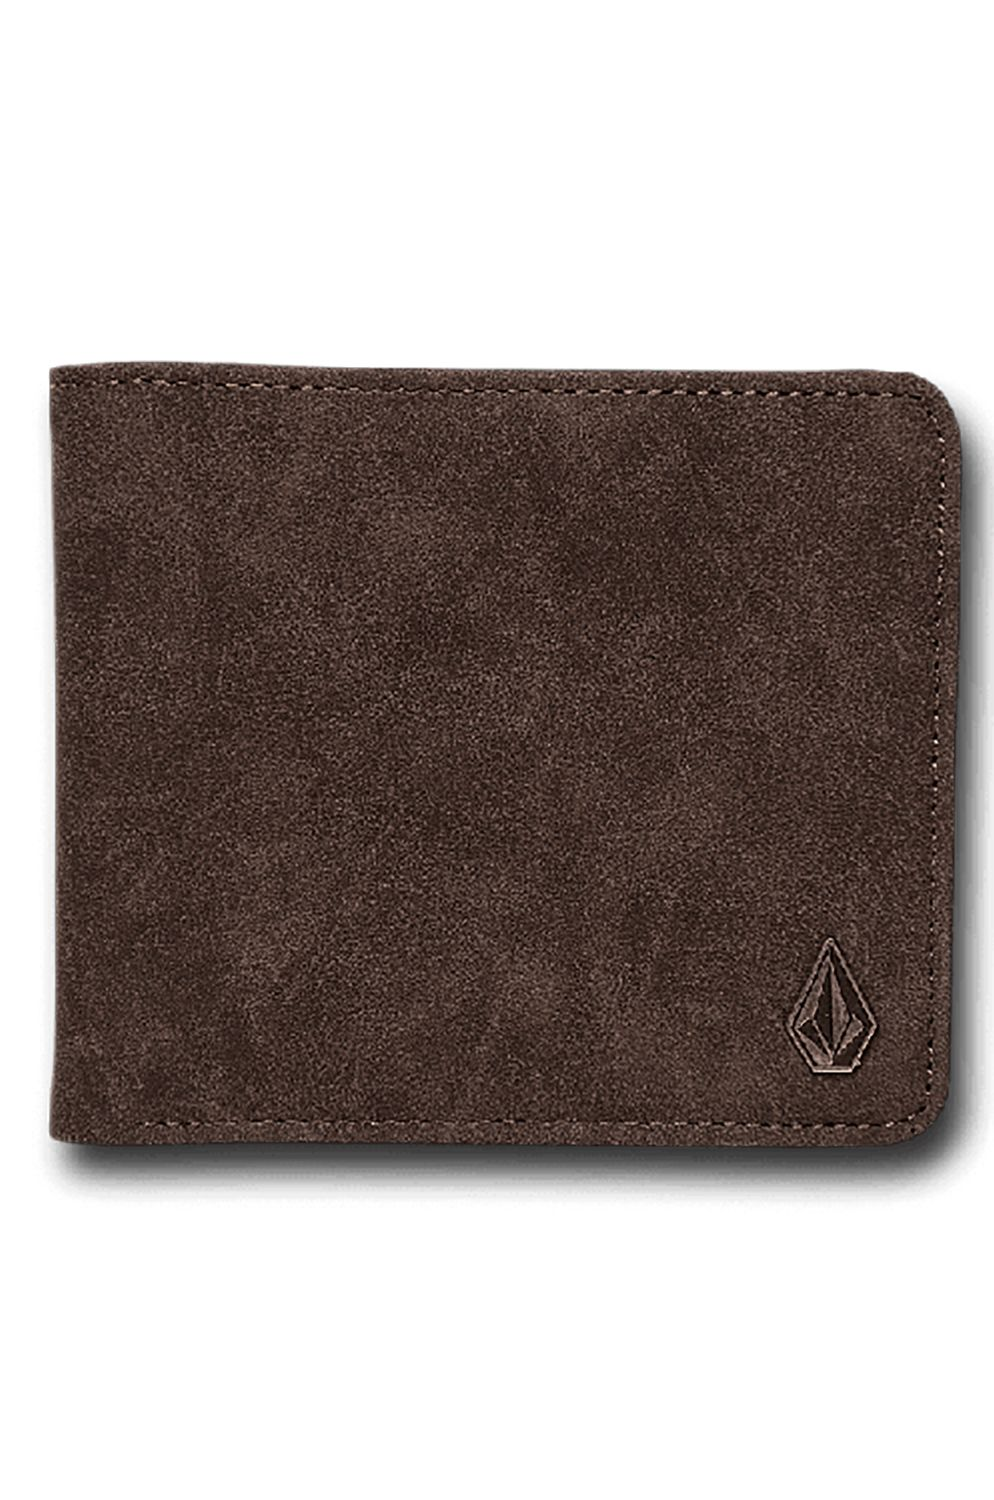 Carteira PU Volcom SLIM STONE Brown